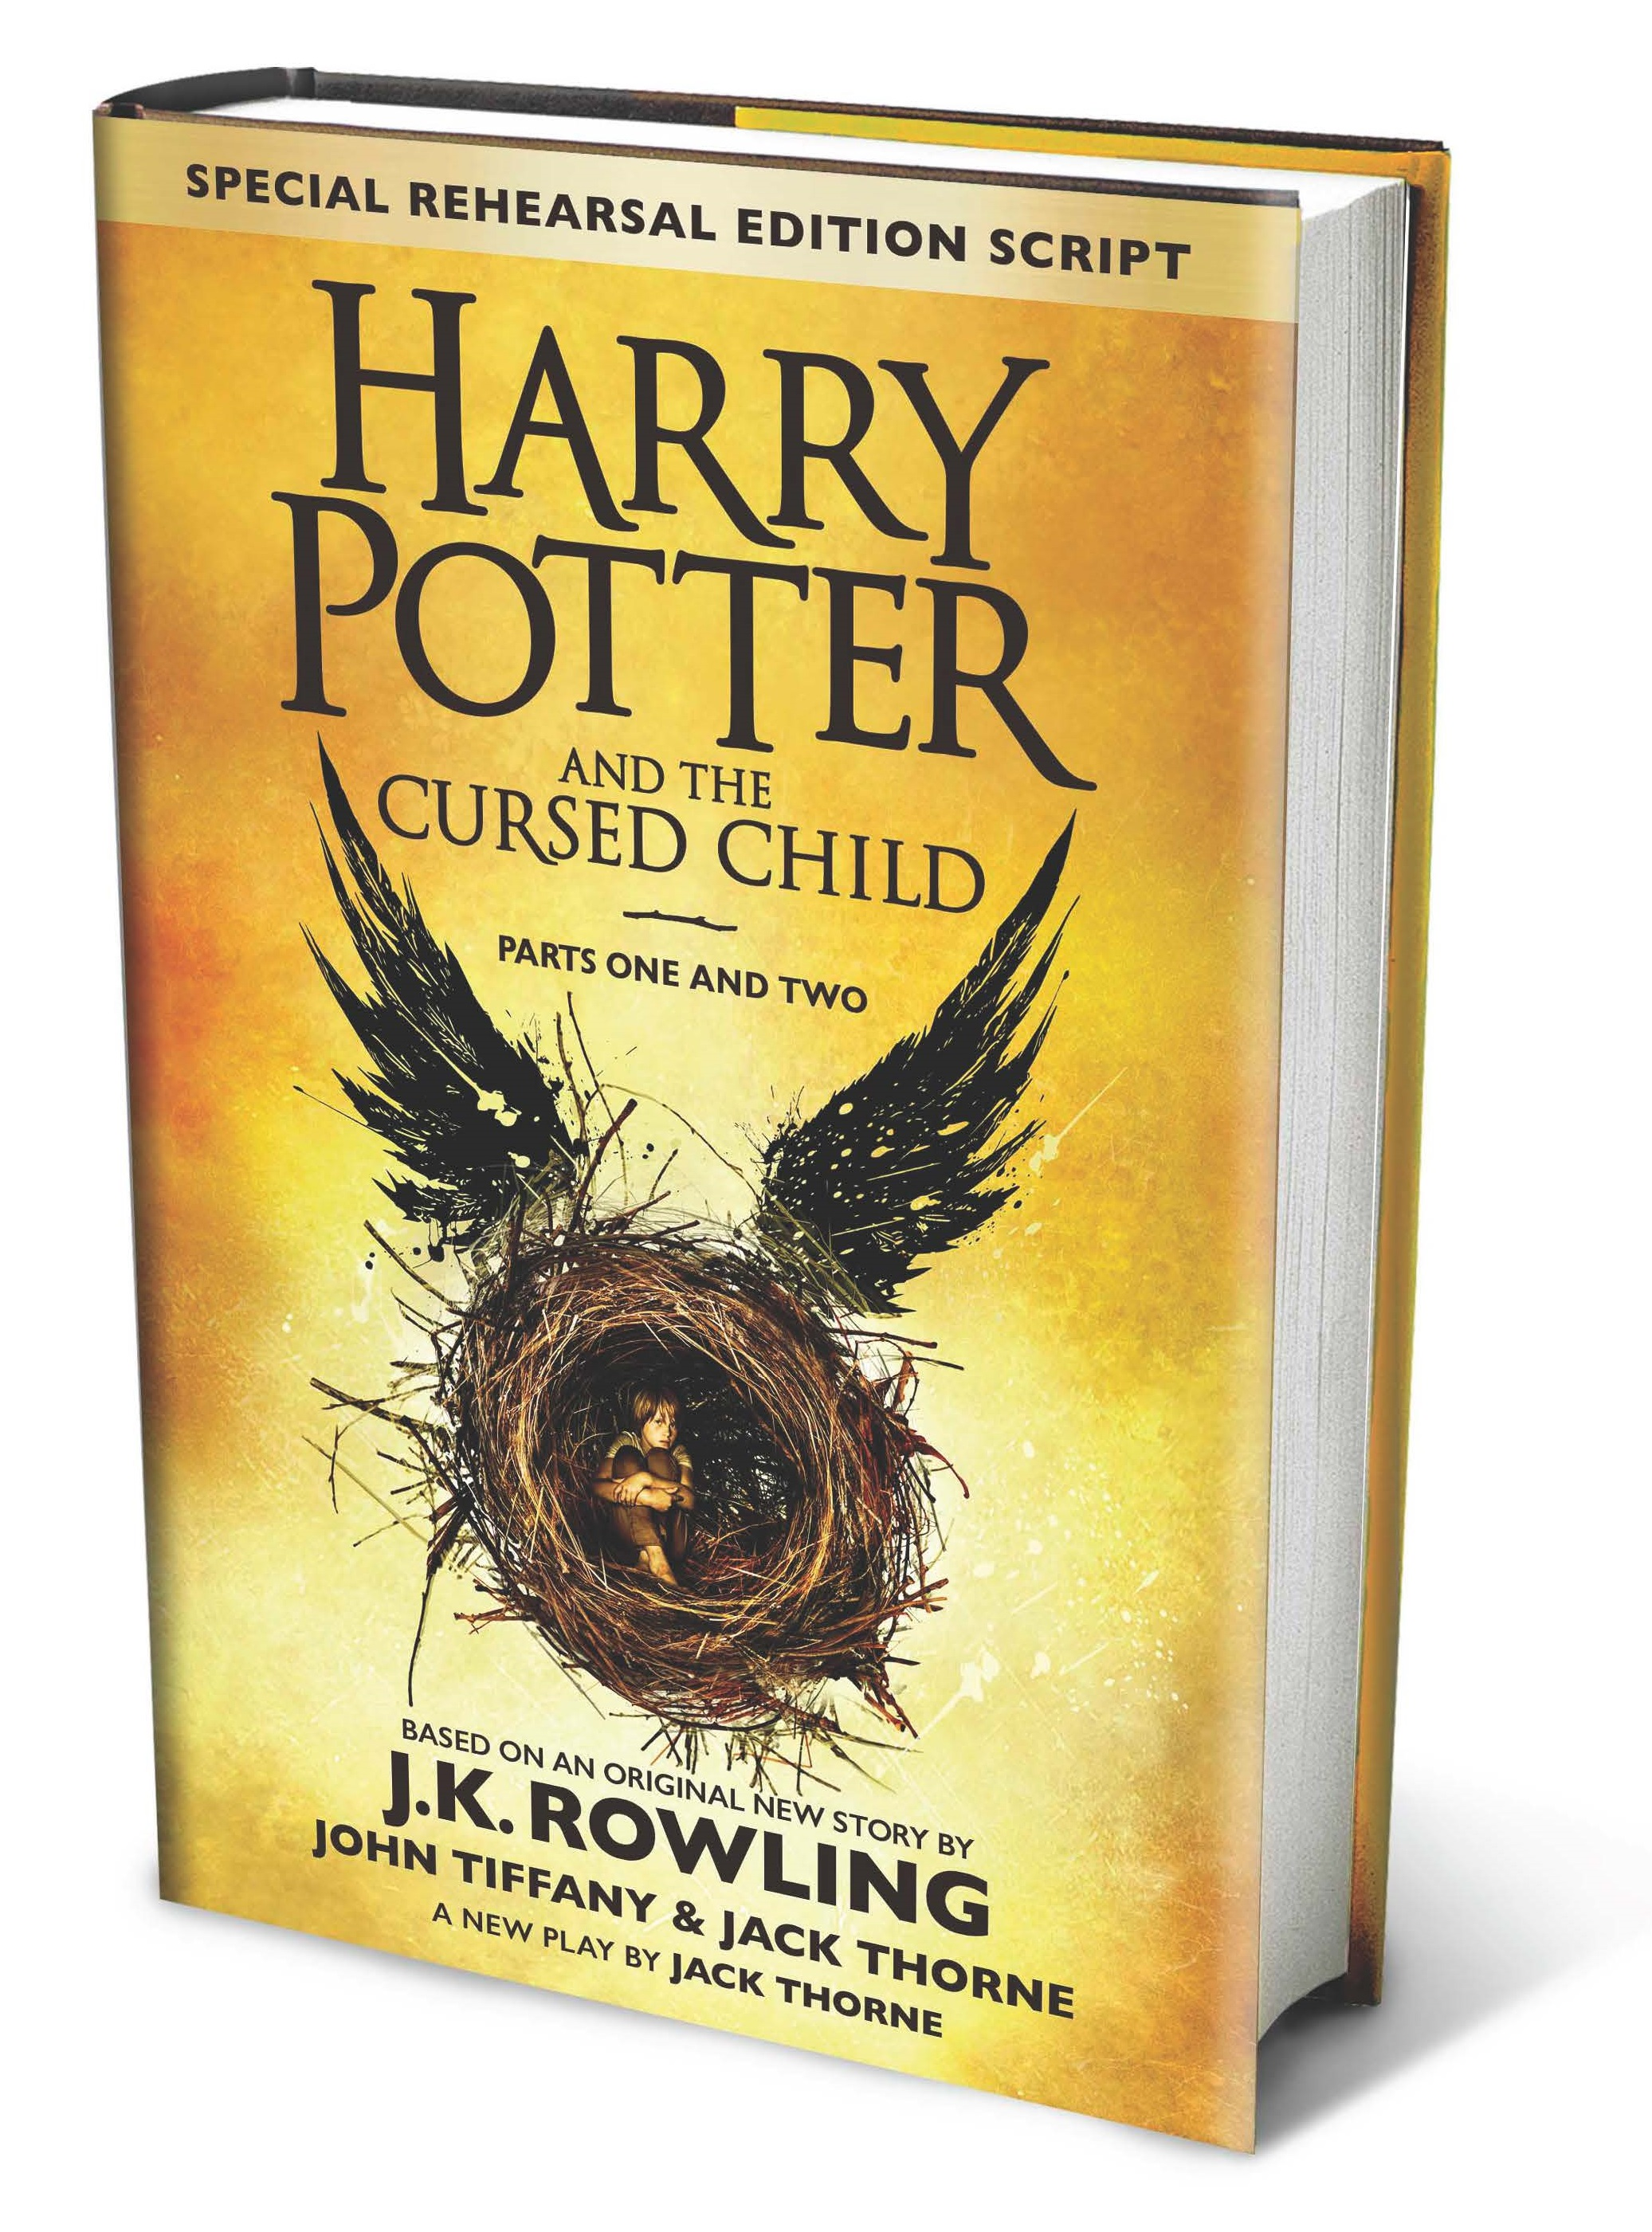 ปก_Harry_Potter_and_the_Cursed_Child_Part_One_and_Two